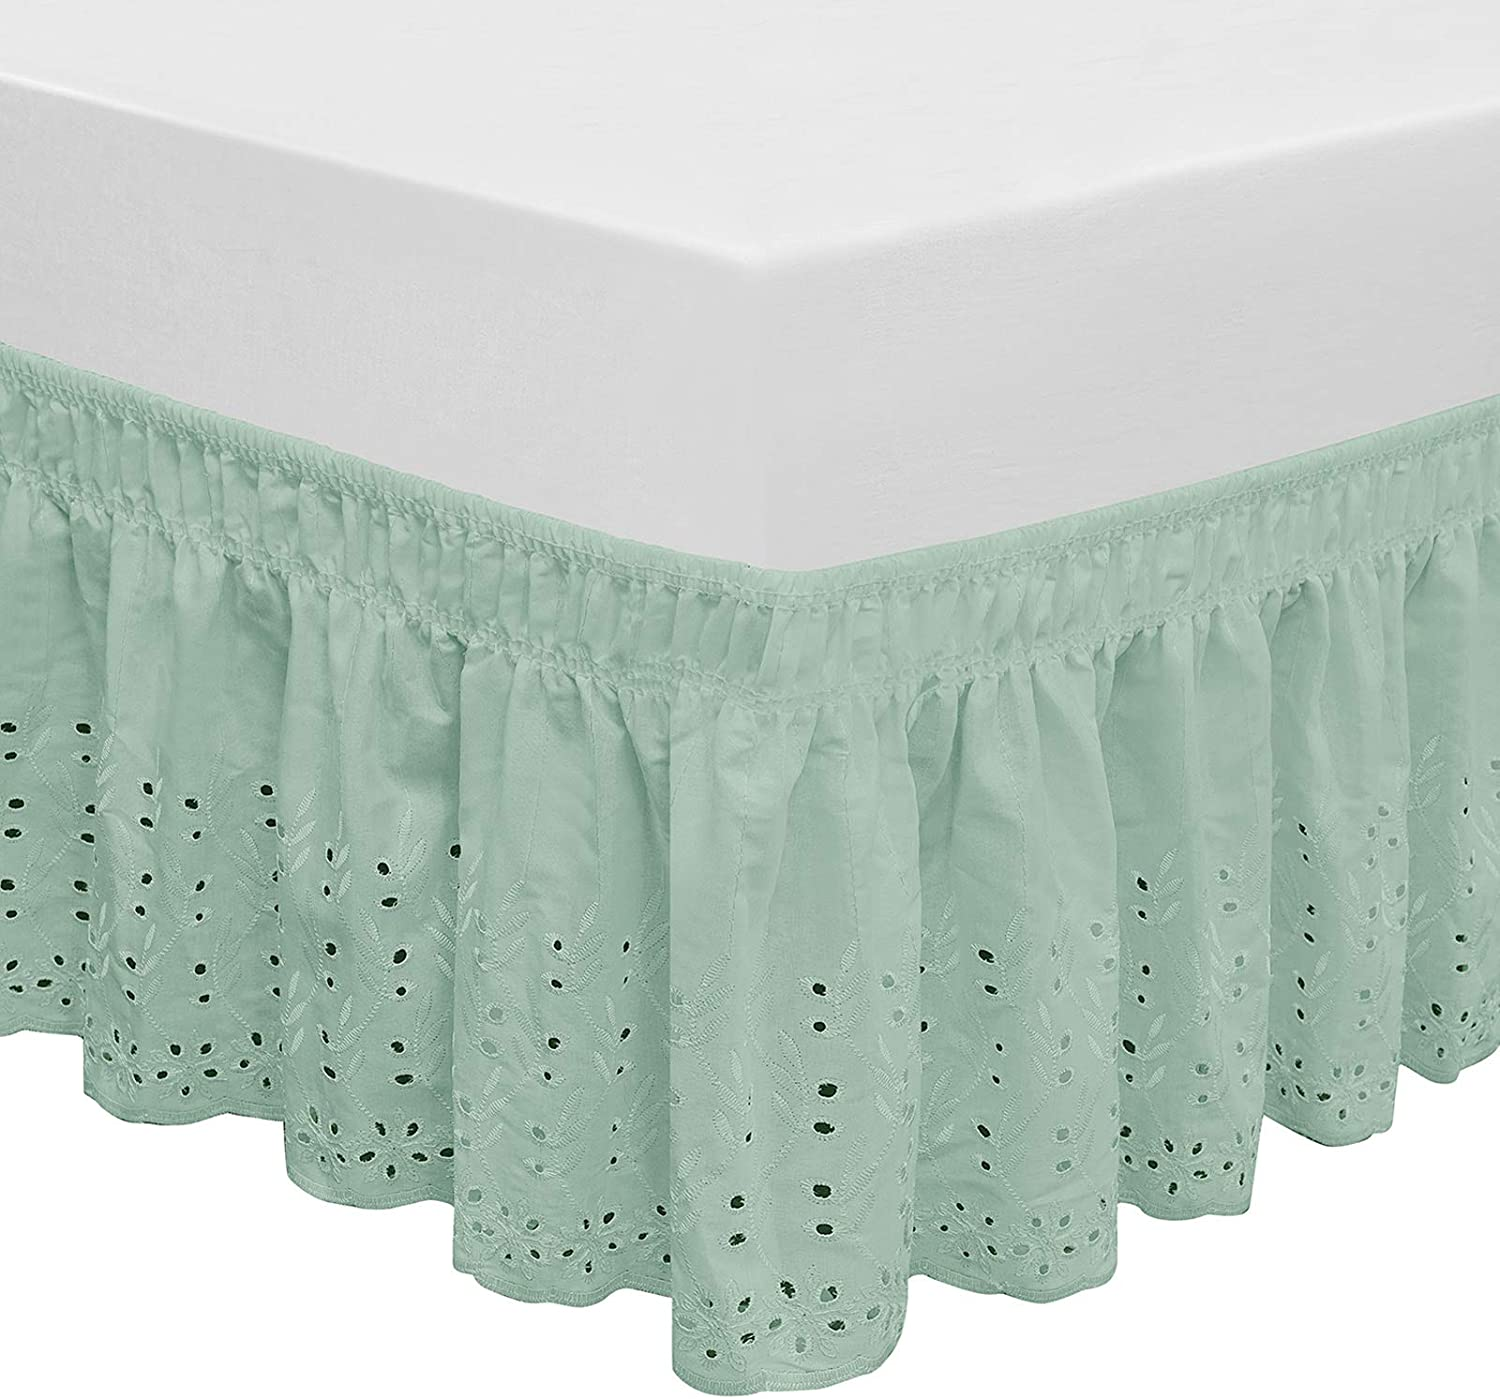 QSY Home Wrap Around Elastic Eyelet Bed Skirts 14 1/2 Inches Drop Dust Ruffle Three Fabric Sides Easy On/Easy Off Adjustable Polyester Cotton 14 1/2 Inches Drop(Light Green Queen/King)